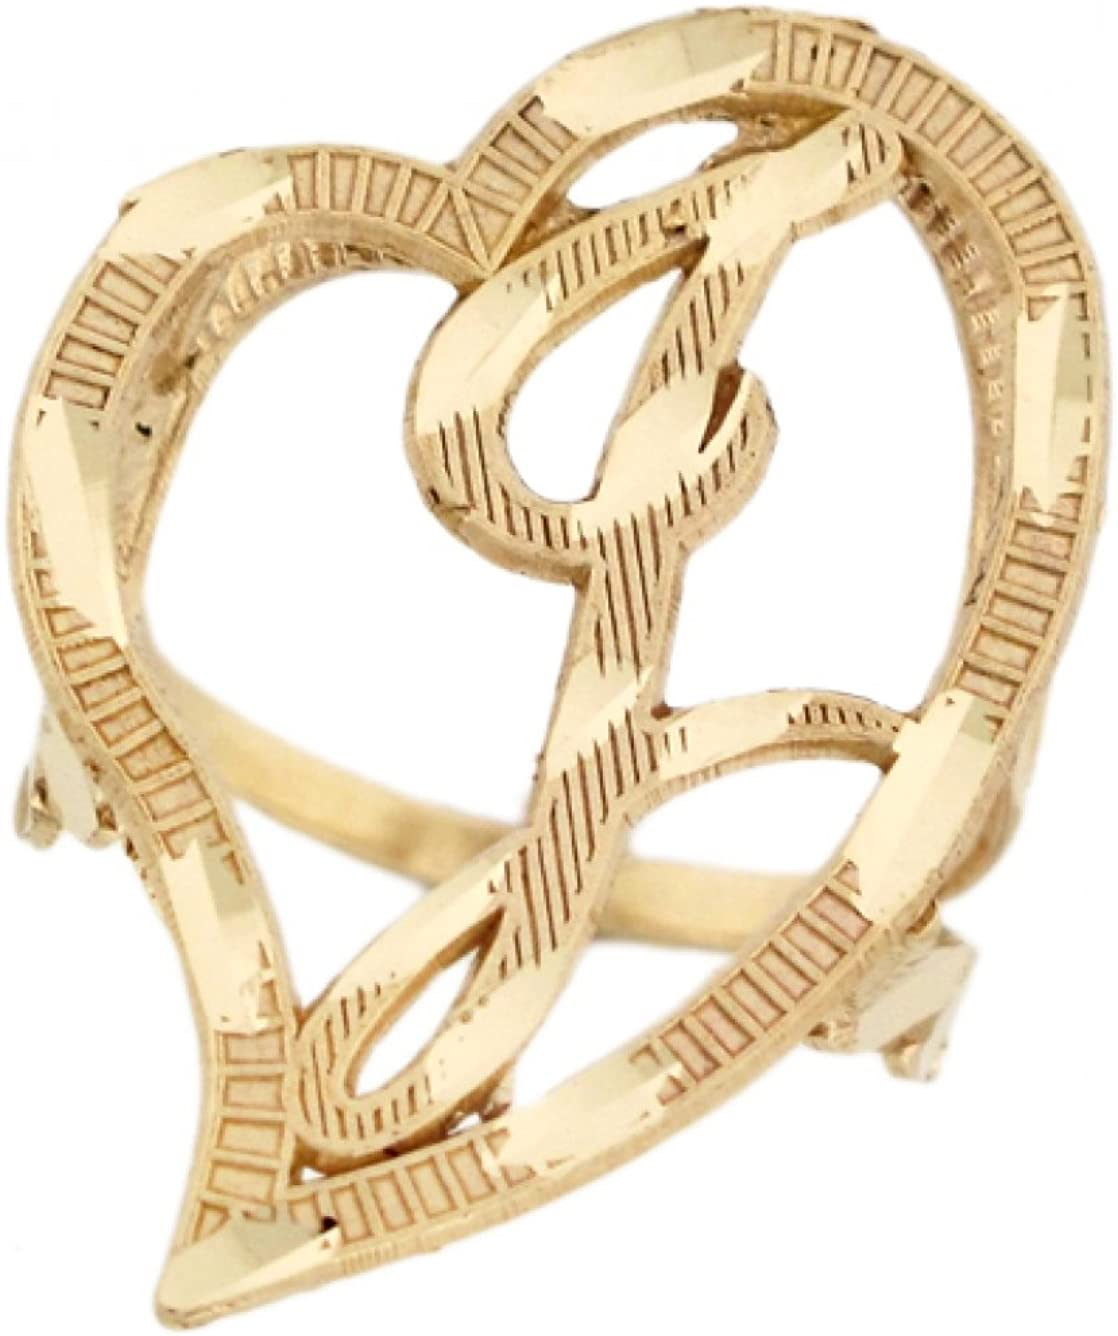 10k or 14k Real Gold Large Heart Cursive Letter M Initial Ring